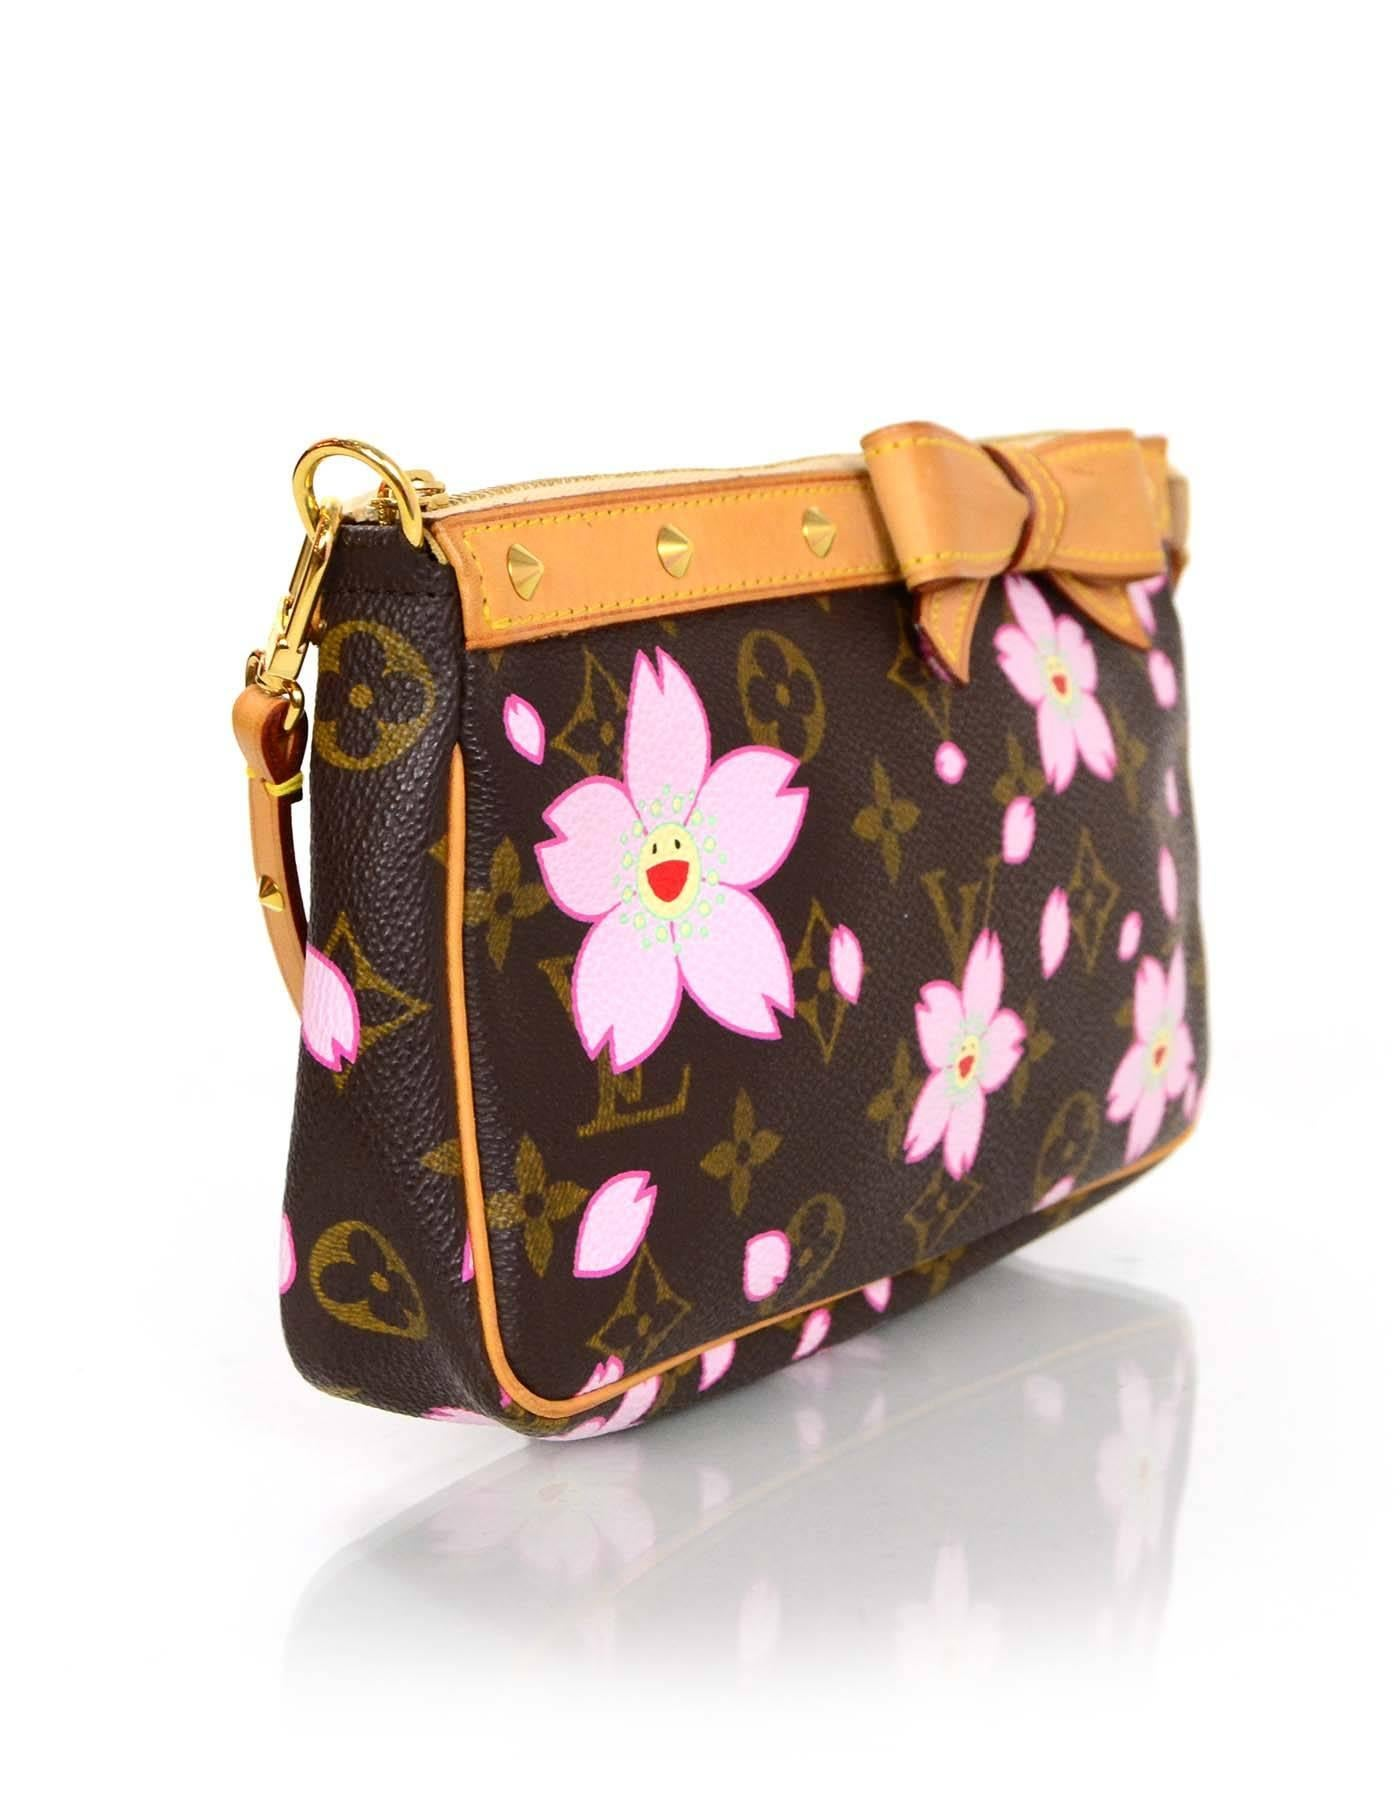 Louis Vuitton Limited Edition Monogram Murakami Cherry Blossom Pochette Bag  For Sale at 1stdibs 4ce271b5105f2